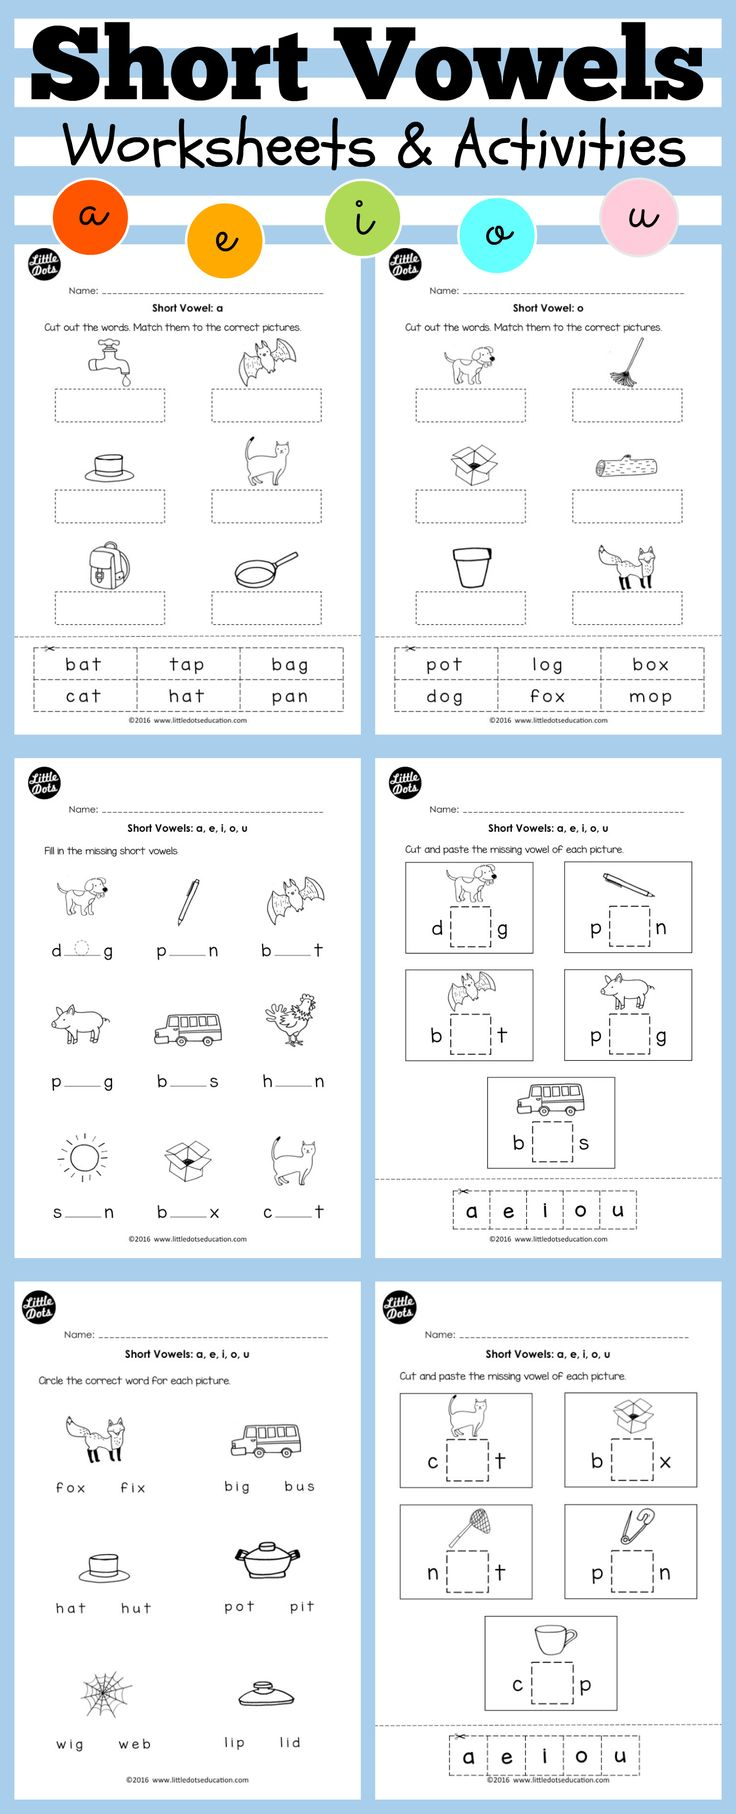 the 25 best ideas about letter o worksheets on pinterest letter o activities alphabet. Black Bedroom Furniture Sets. Home Design Ideas